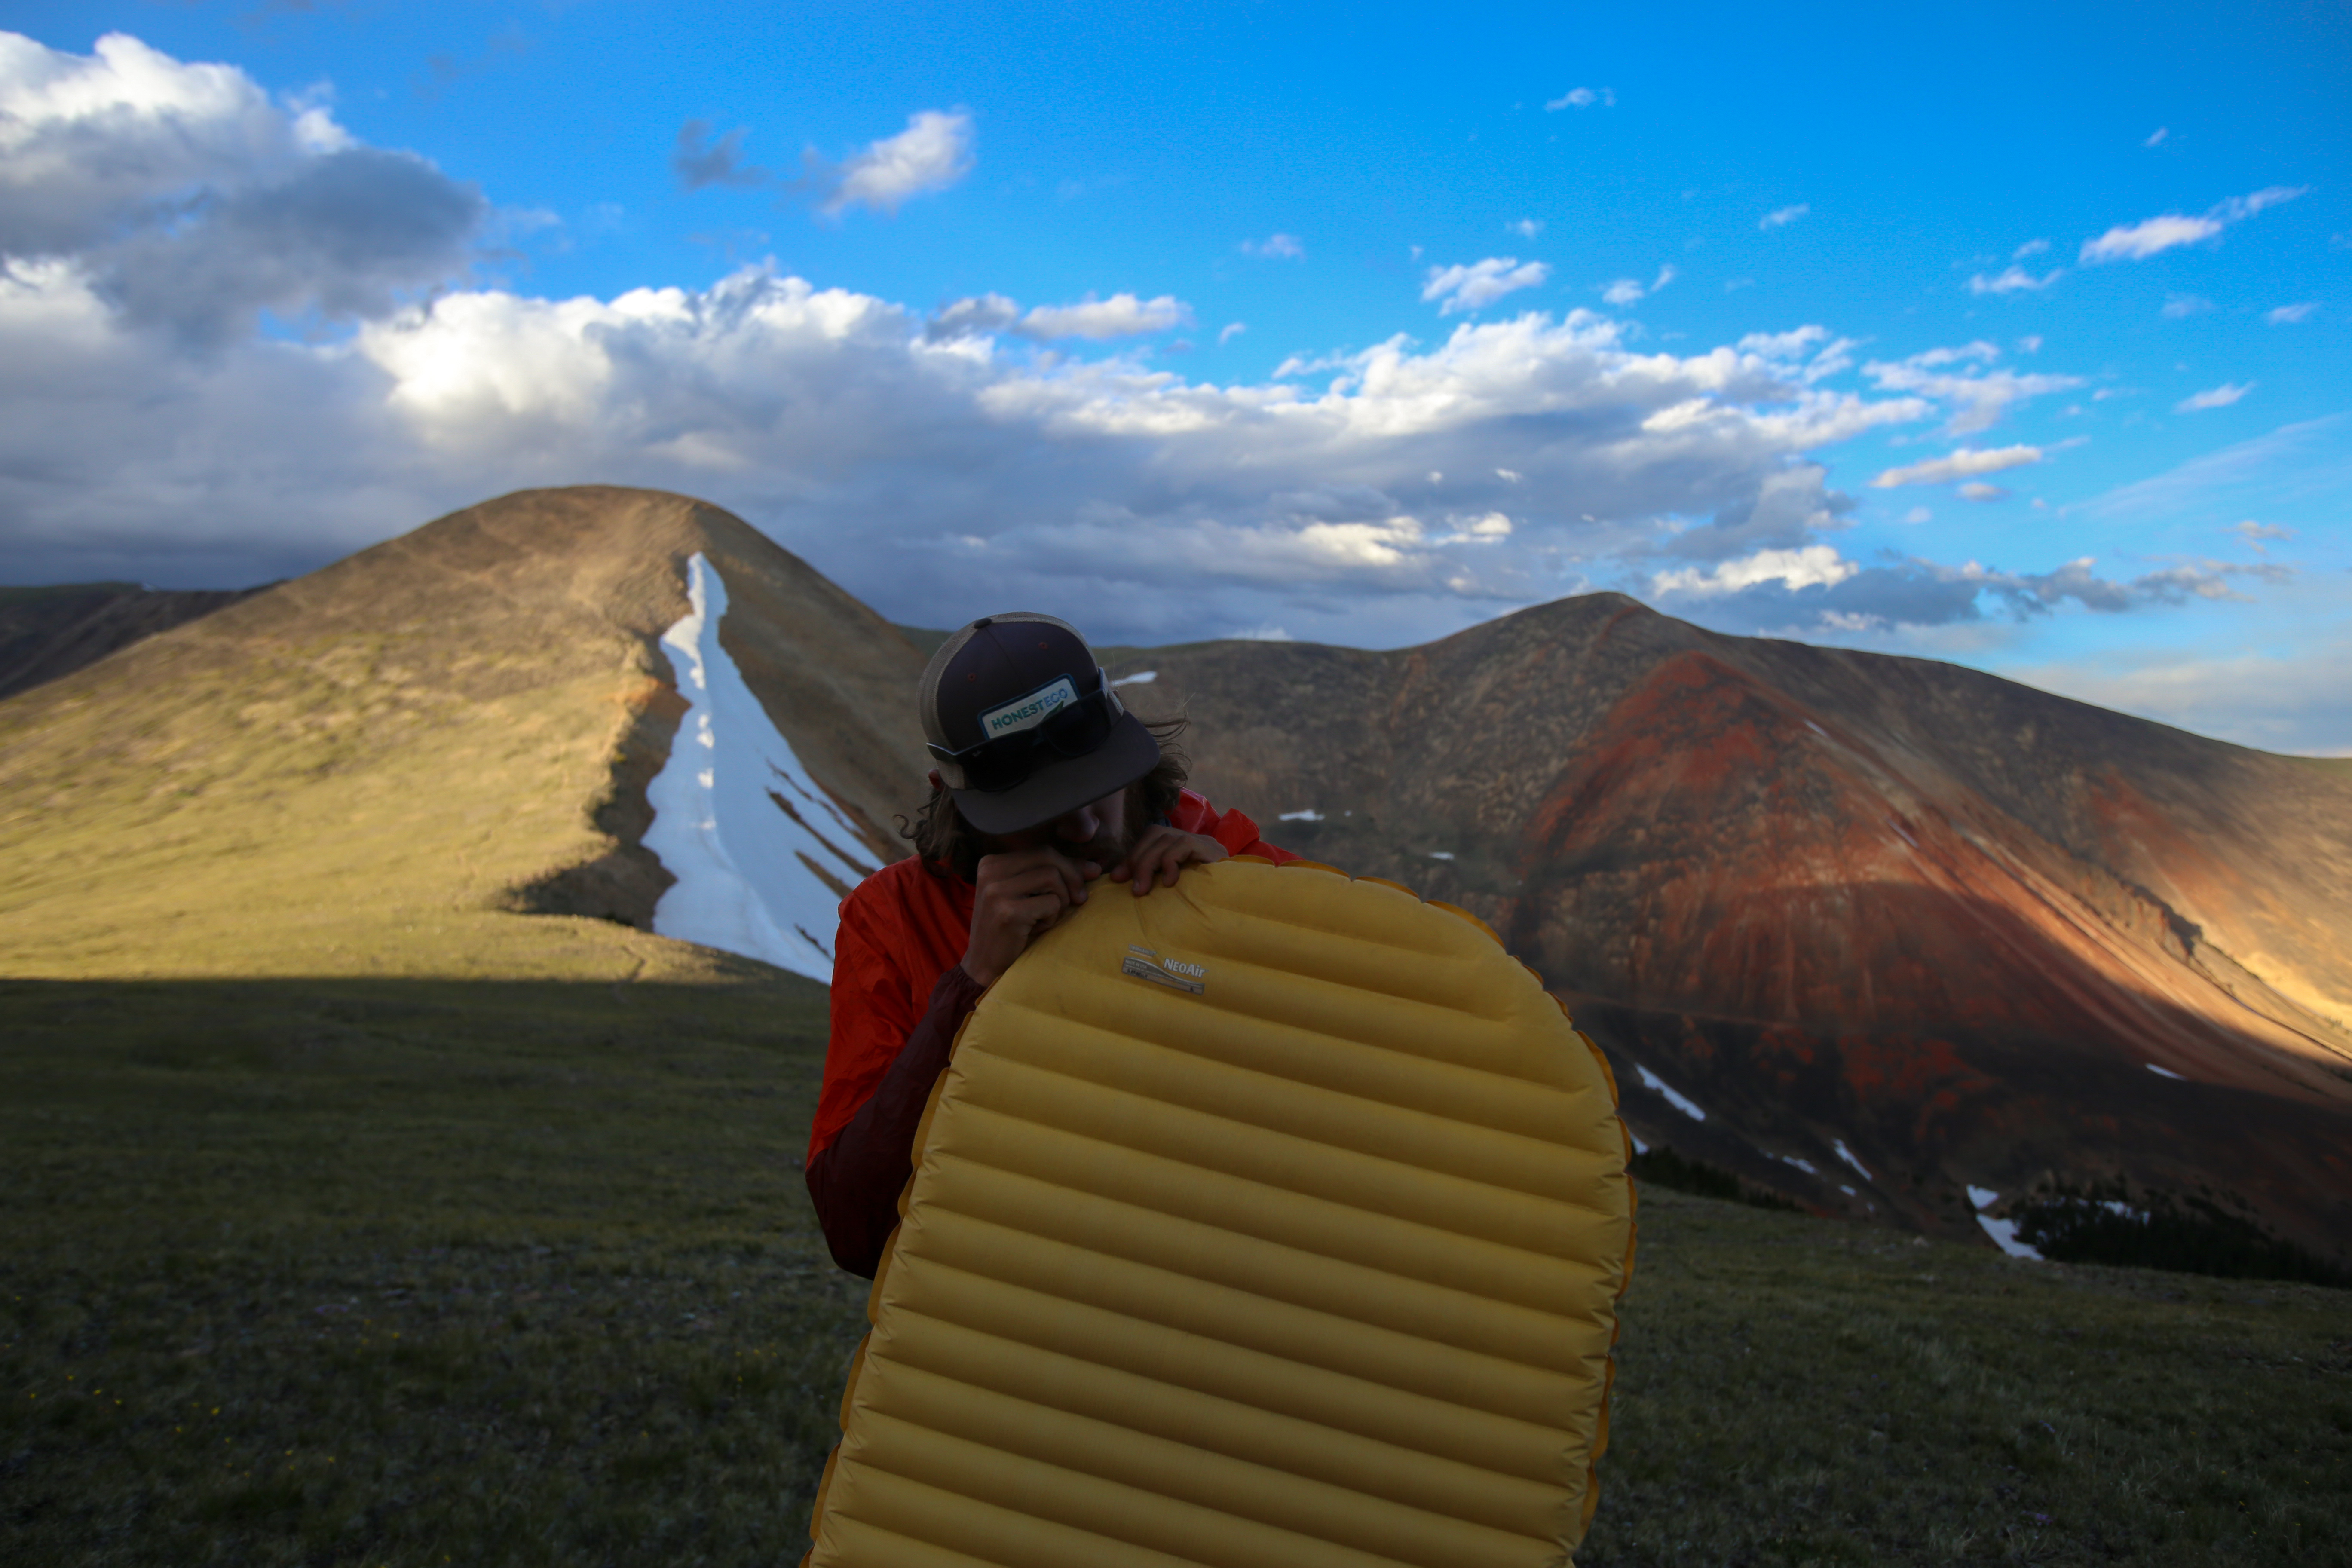 NeoAir XLite Sleeping Pad on the Continental Divide to set up camp home